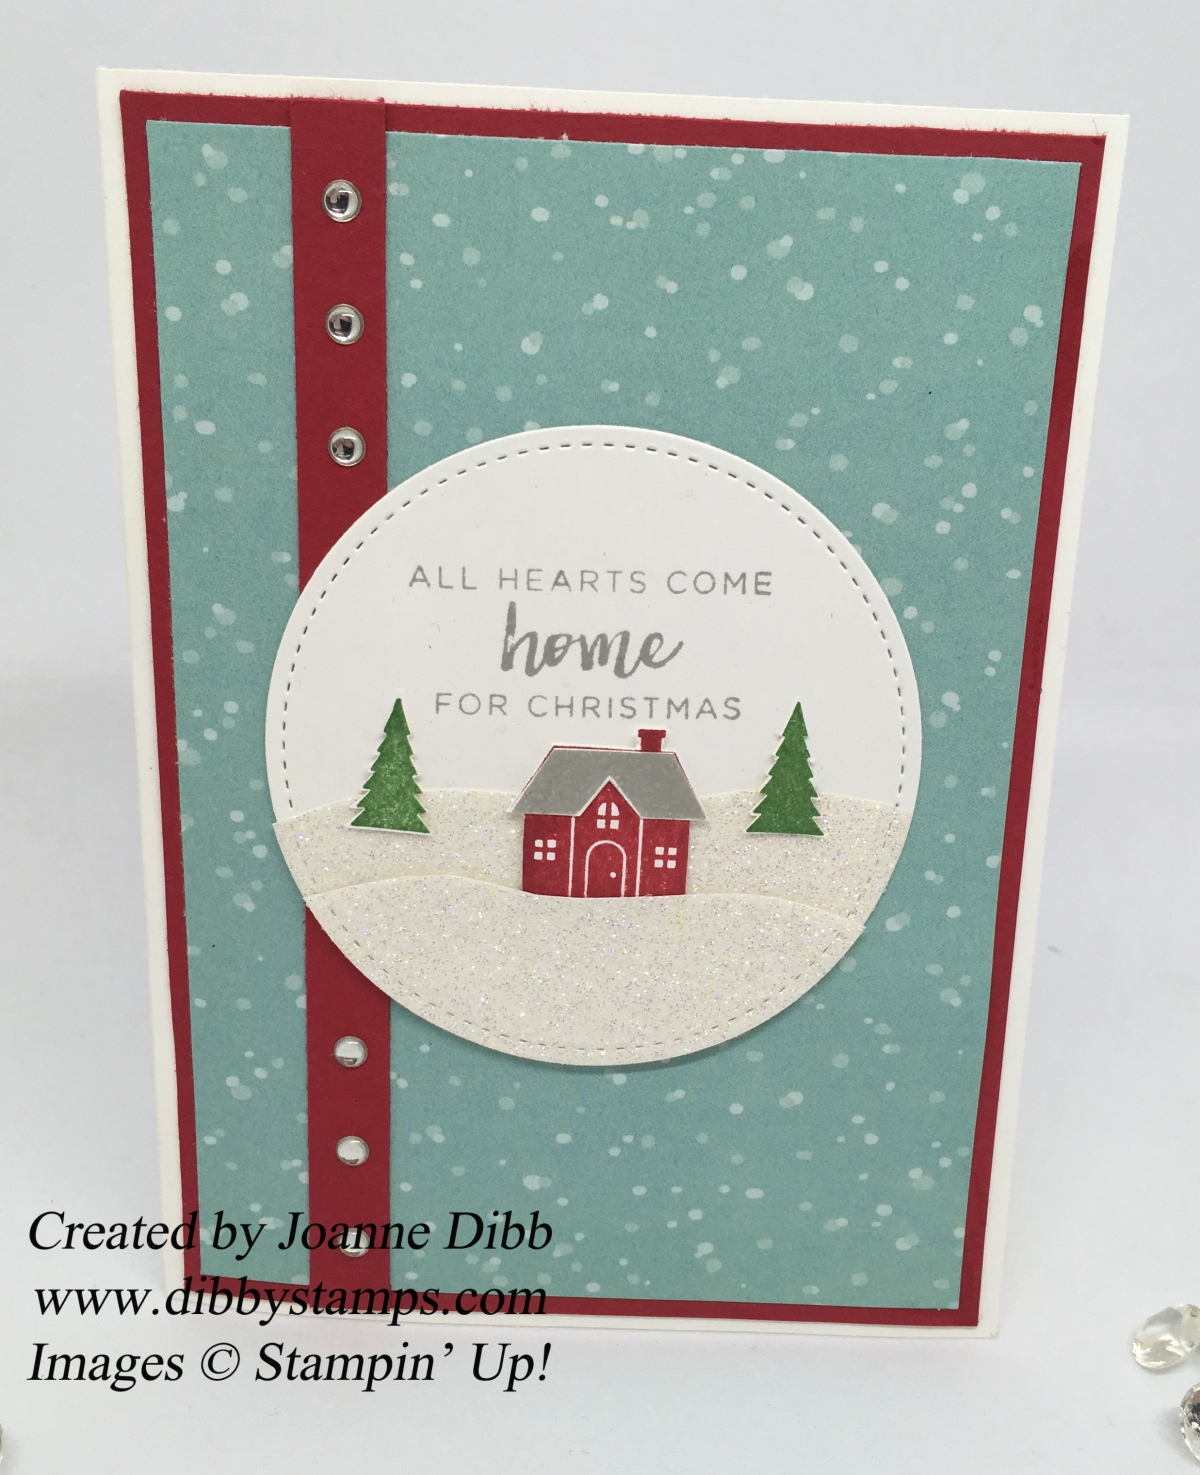 All Hearts Come Home Christmas Card